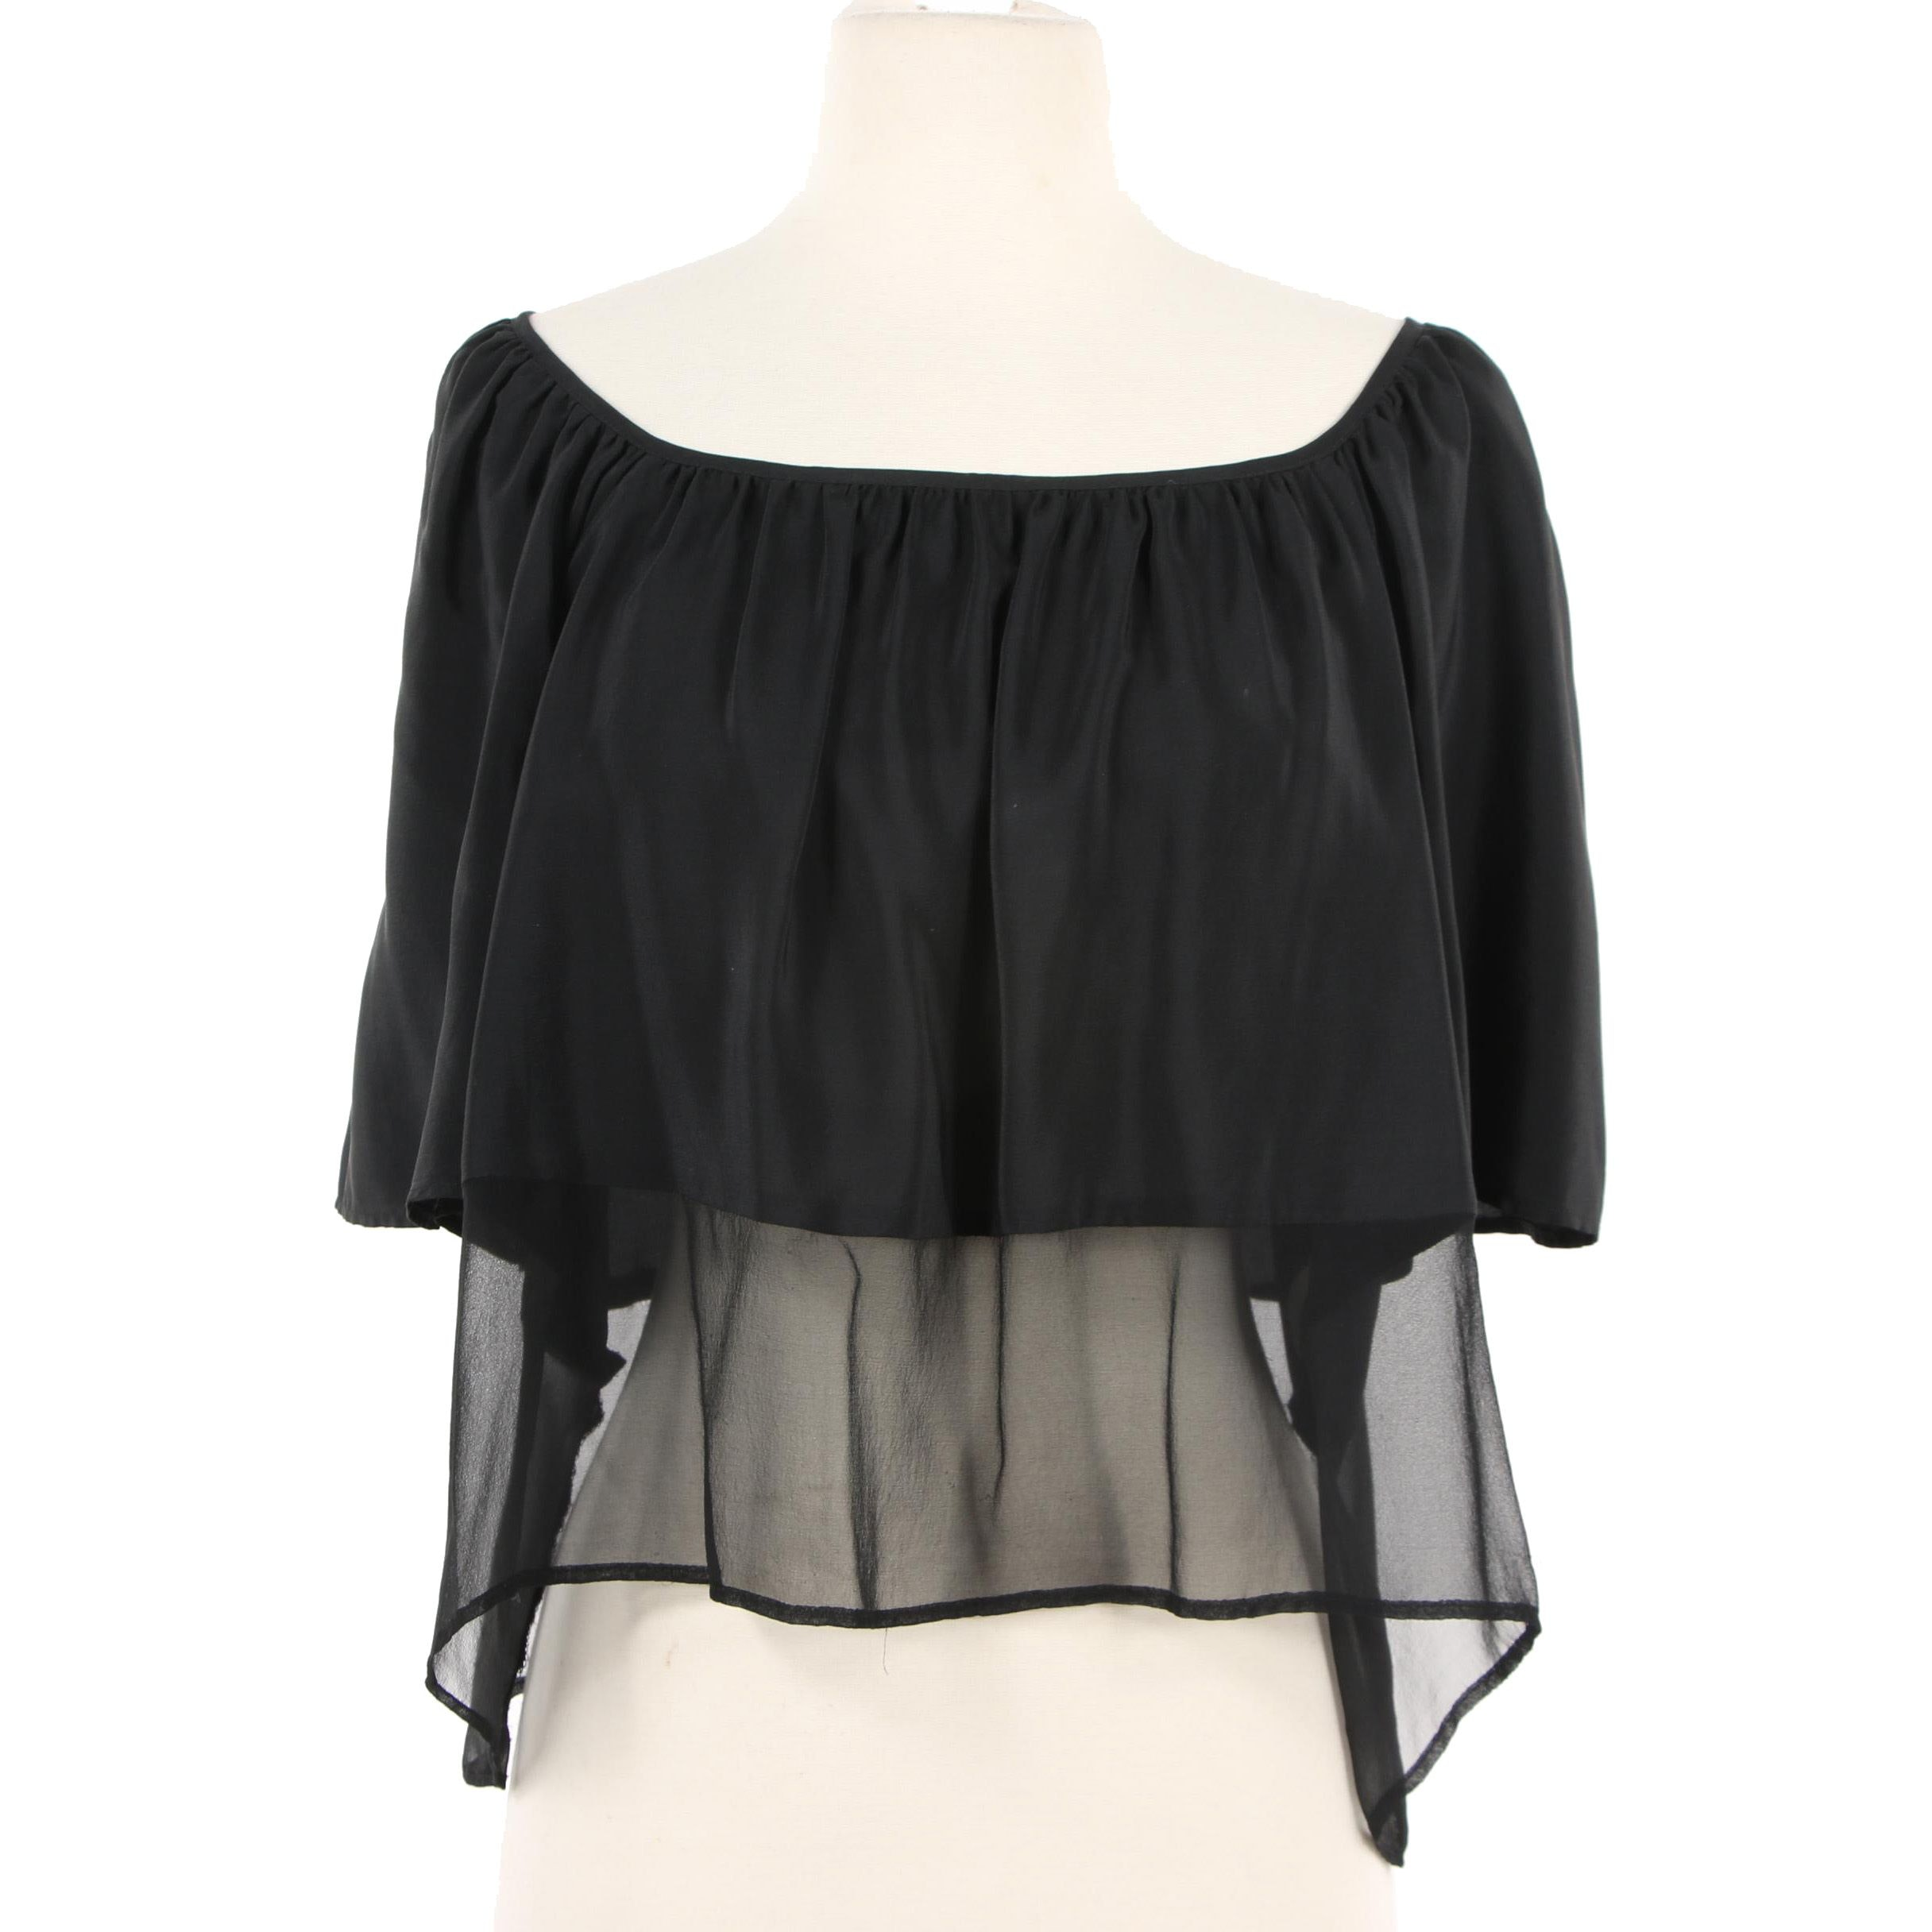 Amanda Uprichard Black Silk Tiered Illusion Crop Top